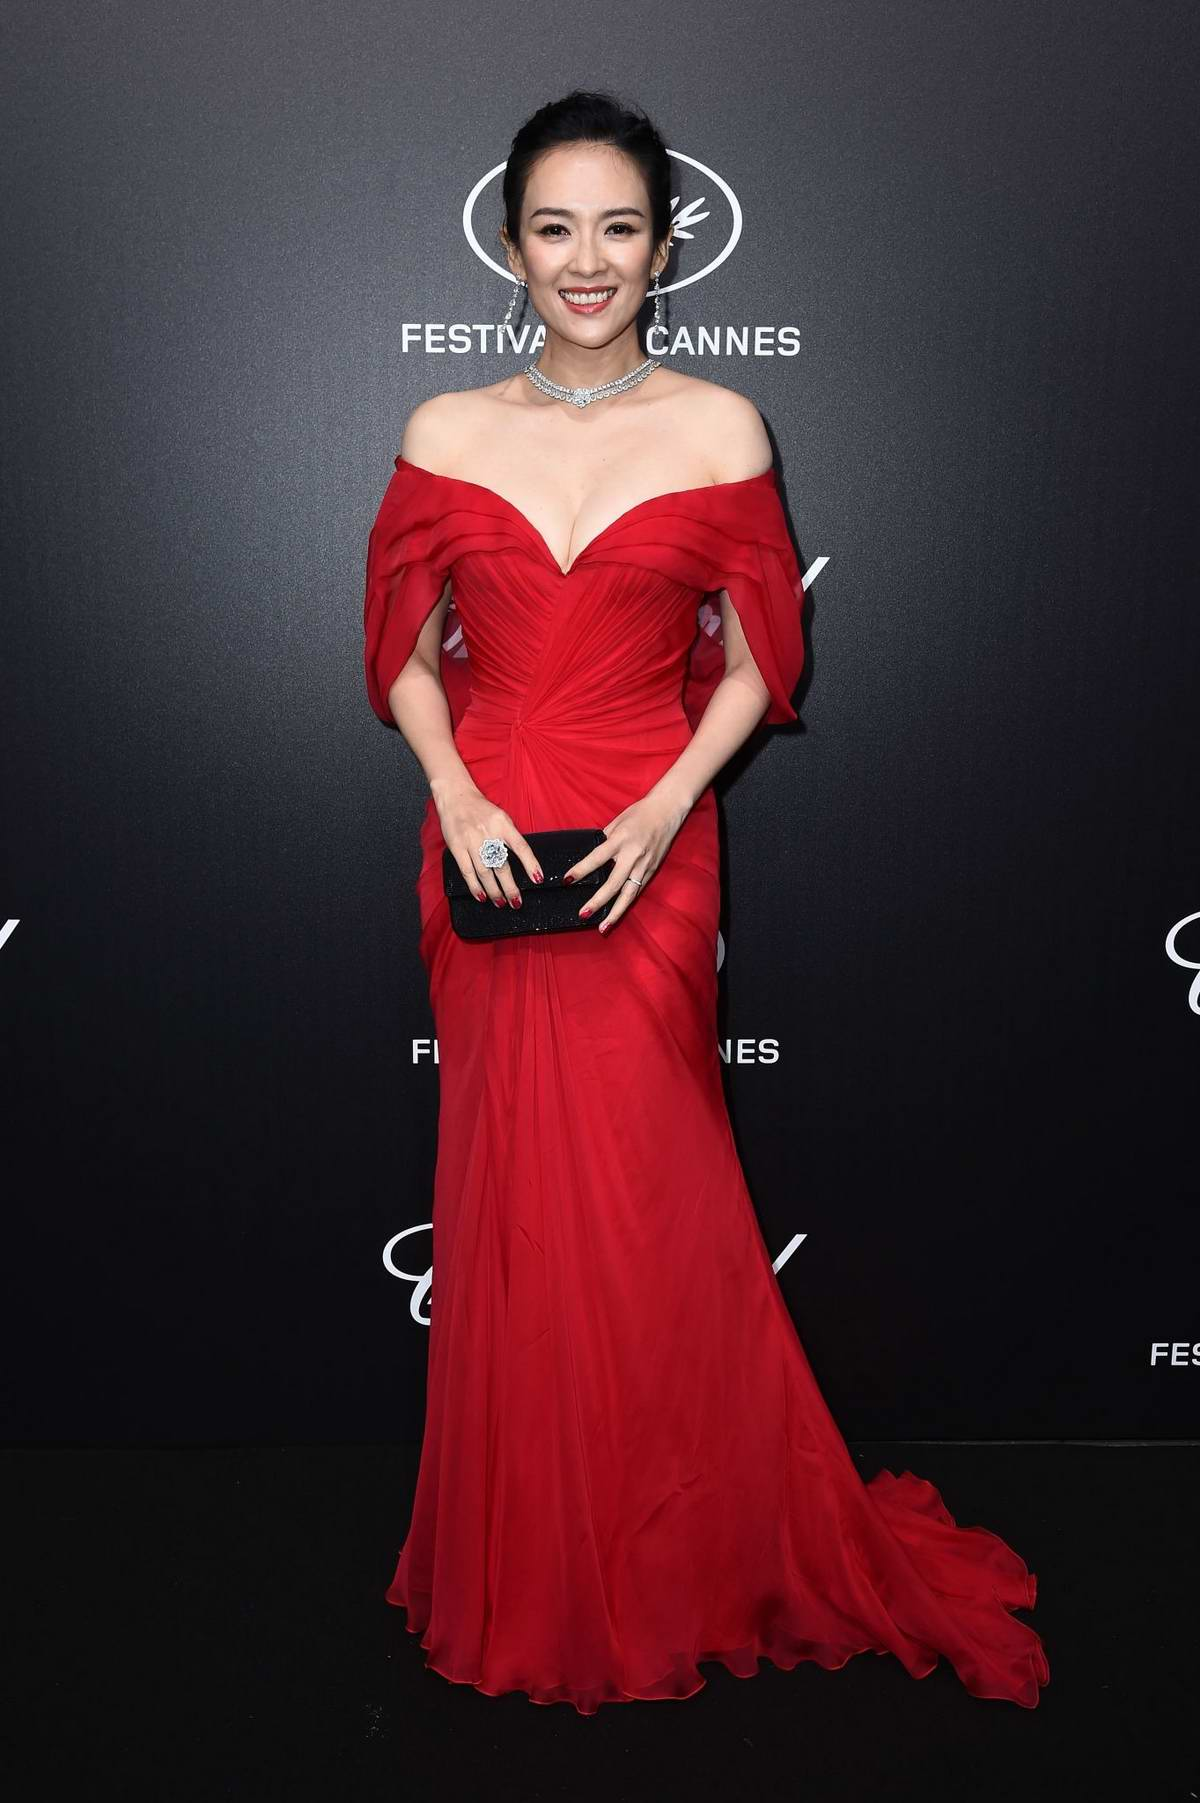 Zhang Ziyi attends the official Trophee Chopard Dinner Photocall during the 72nd annual Cannes Film Festival in Cannes, France